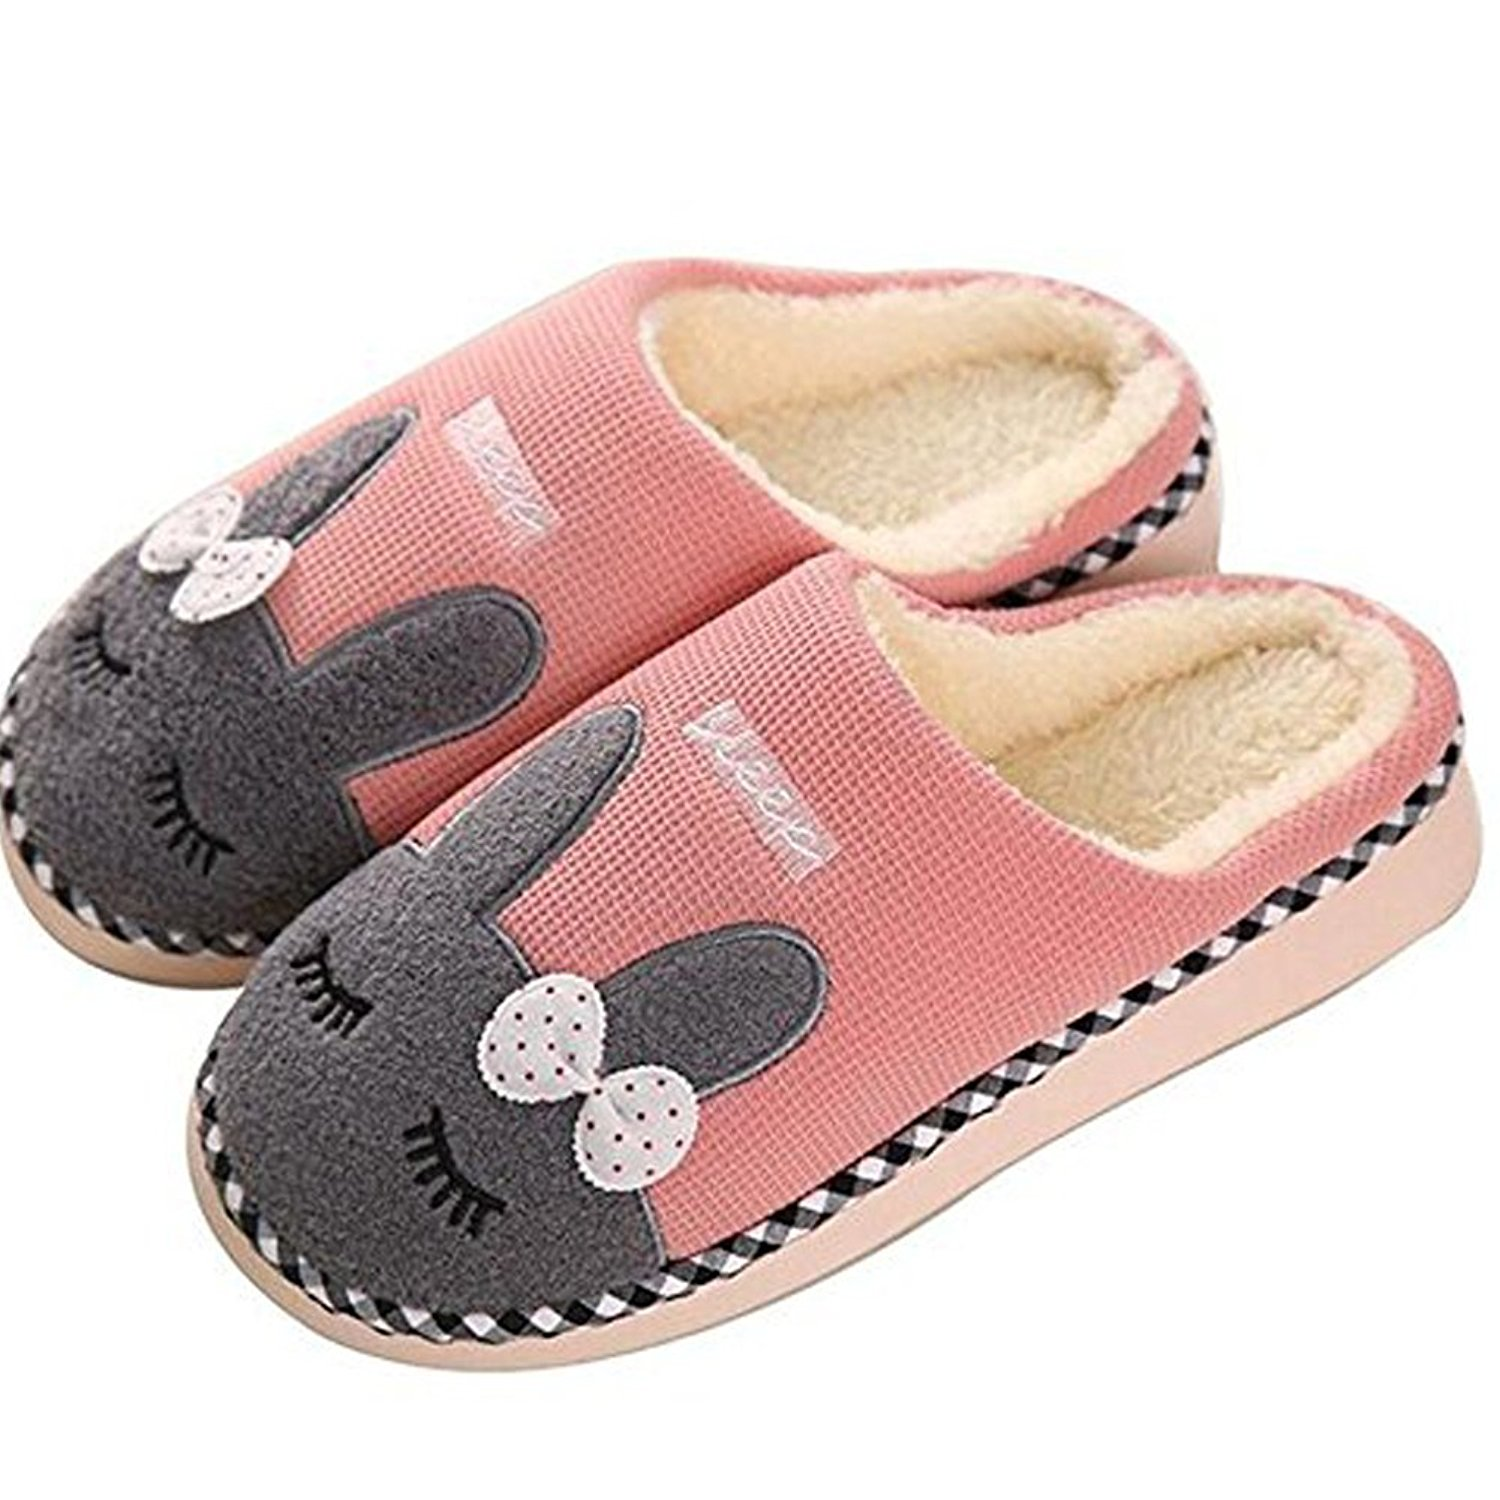 a18cde063 Winter cute stuffed bunny home floor trailer plush boots warm slippers at home  slipper shoes woman 2013 free shipping